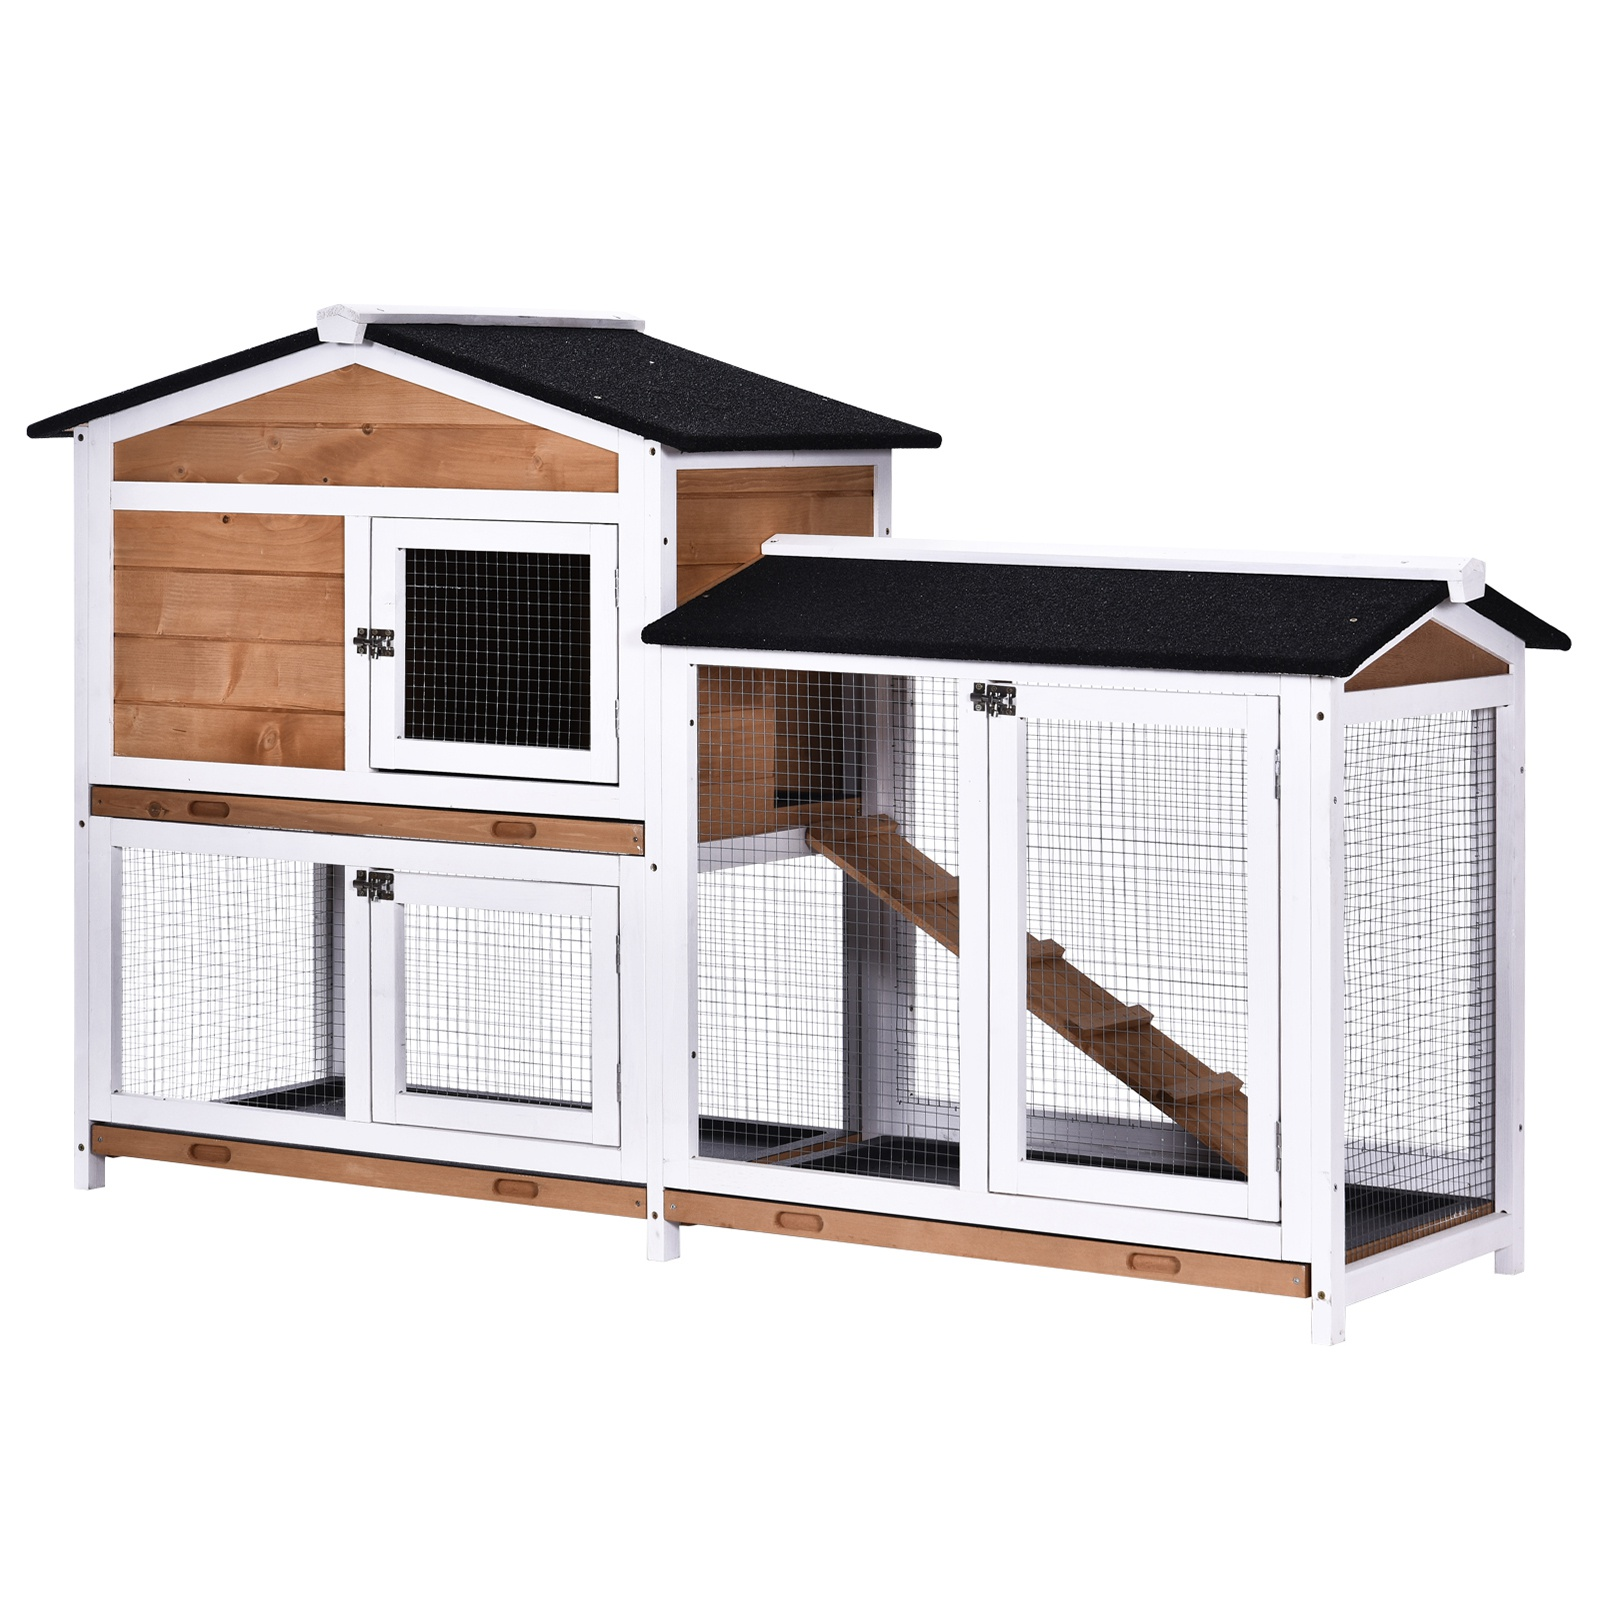 Pawhut Rabbit Hutch 2 Tier Wood Rabbit Hutch Backyard Cage Small Animal House With Ramp And Outdoor Run The Perfect Diy Project 62 L Small Animal Cages Aosom